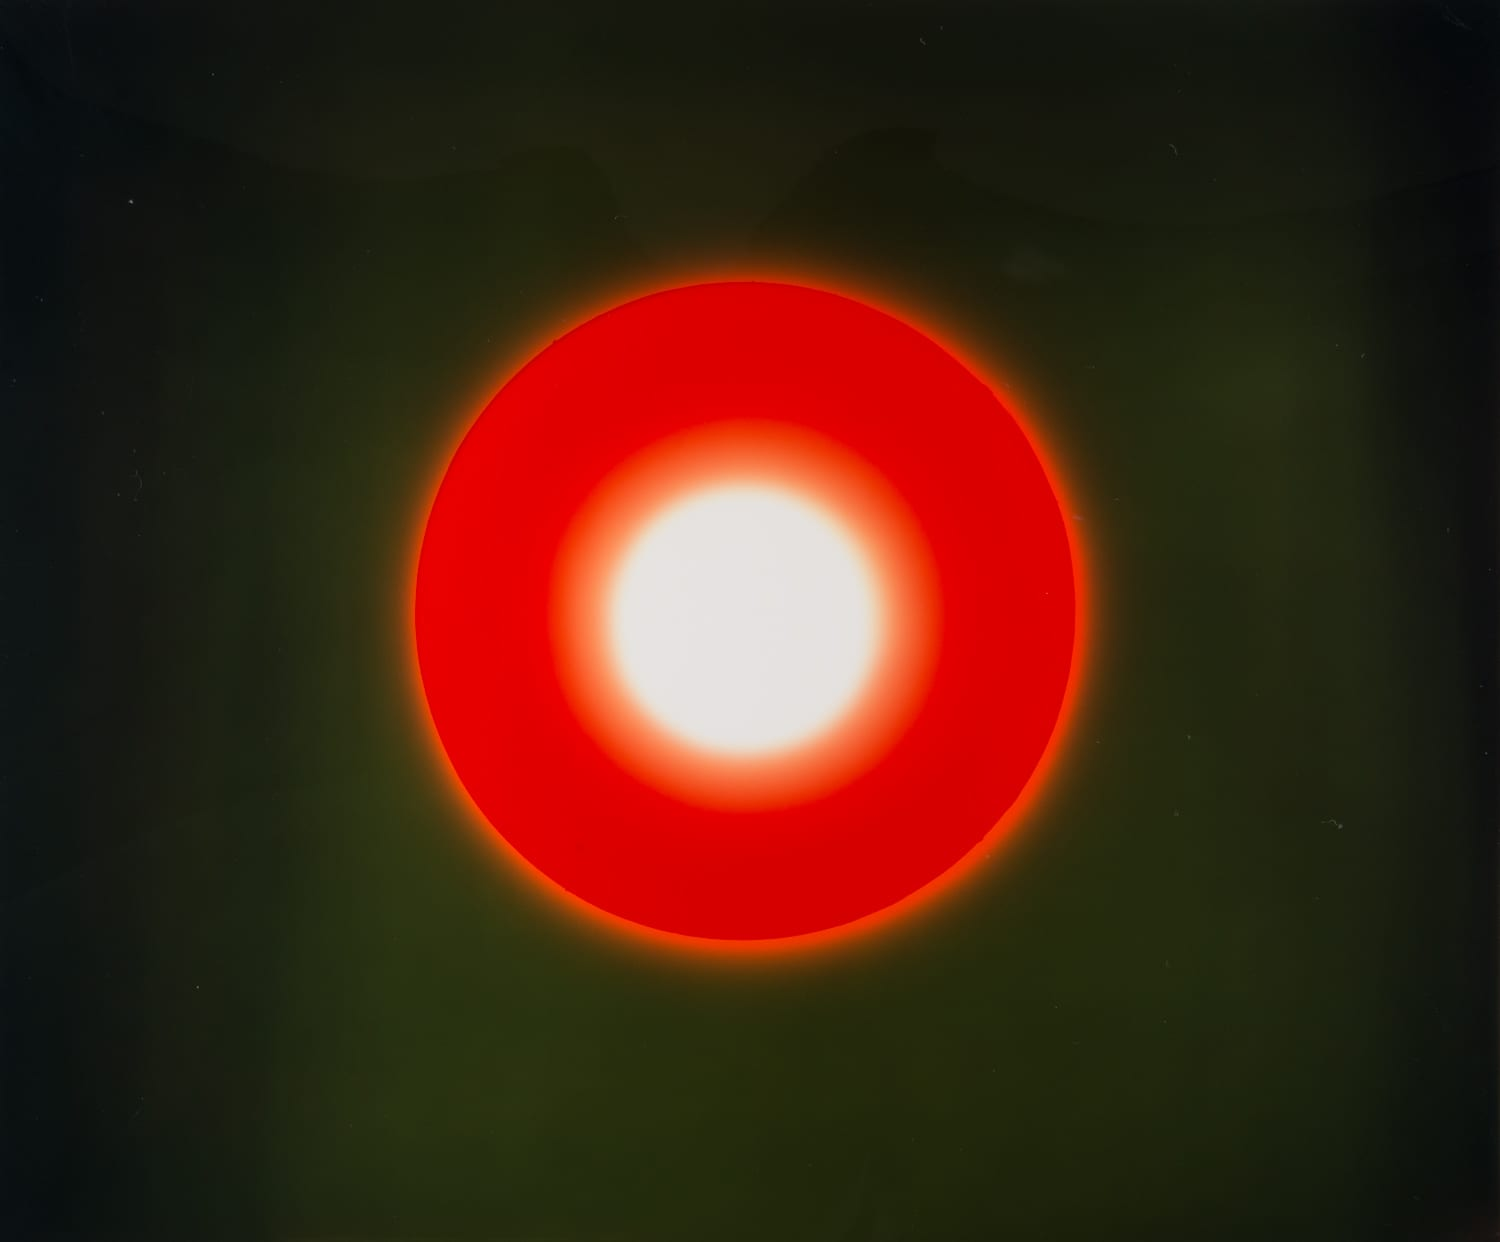 Garry Fabian Miller - burn brightly - hackelbury fine art- camera less photography - red circle on green background